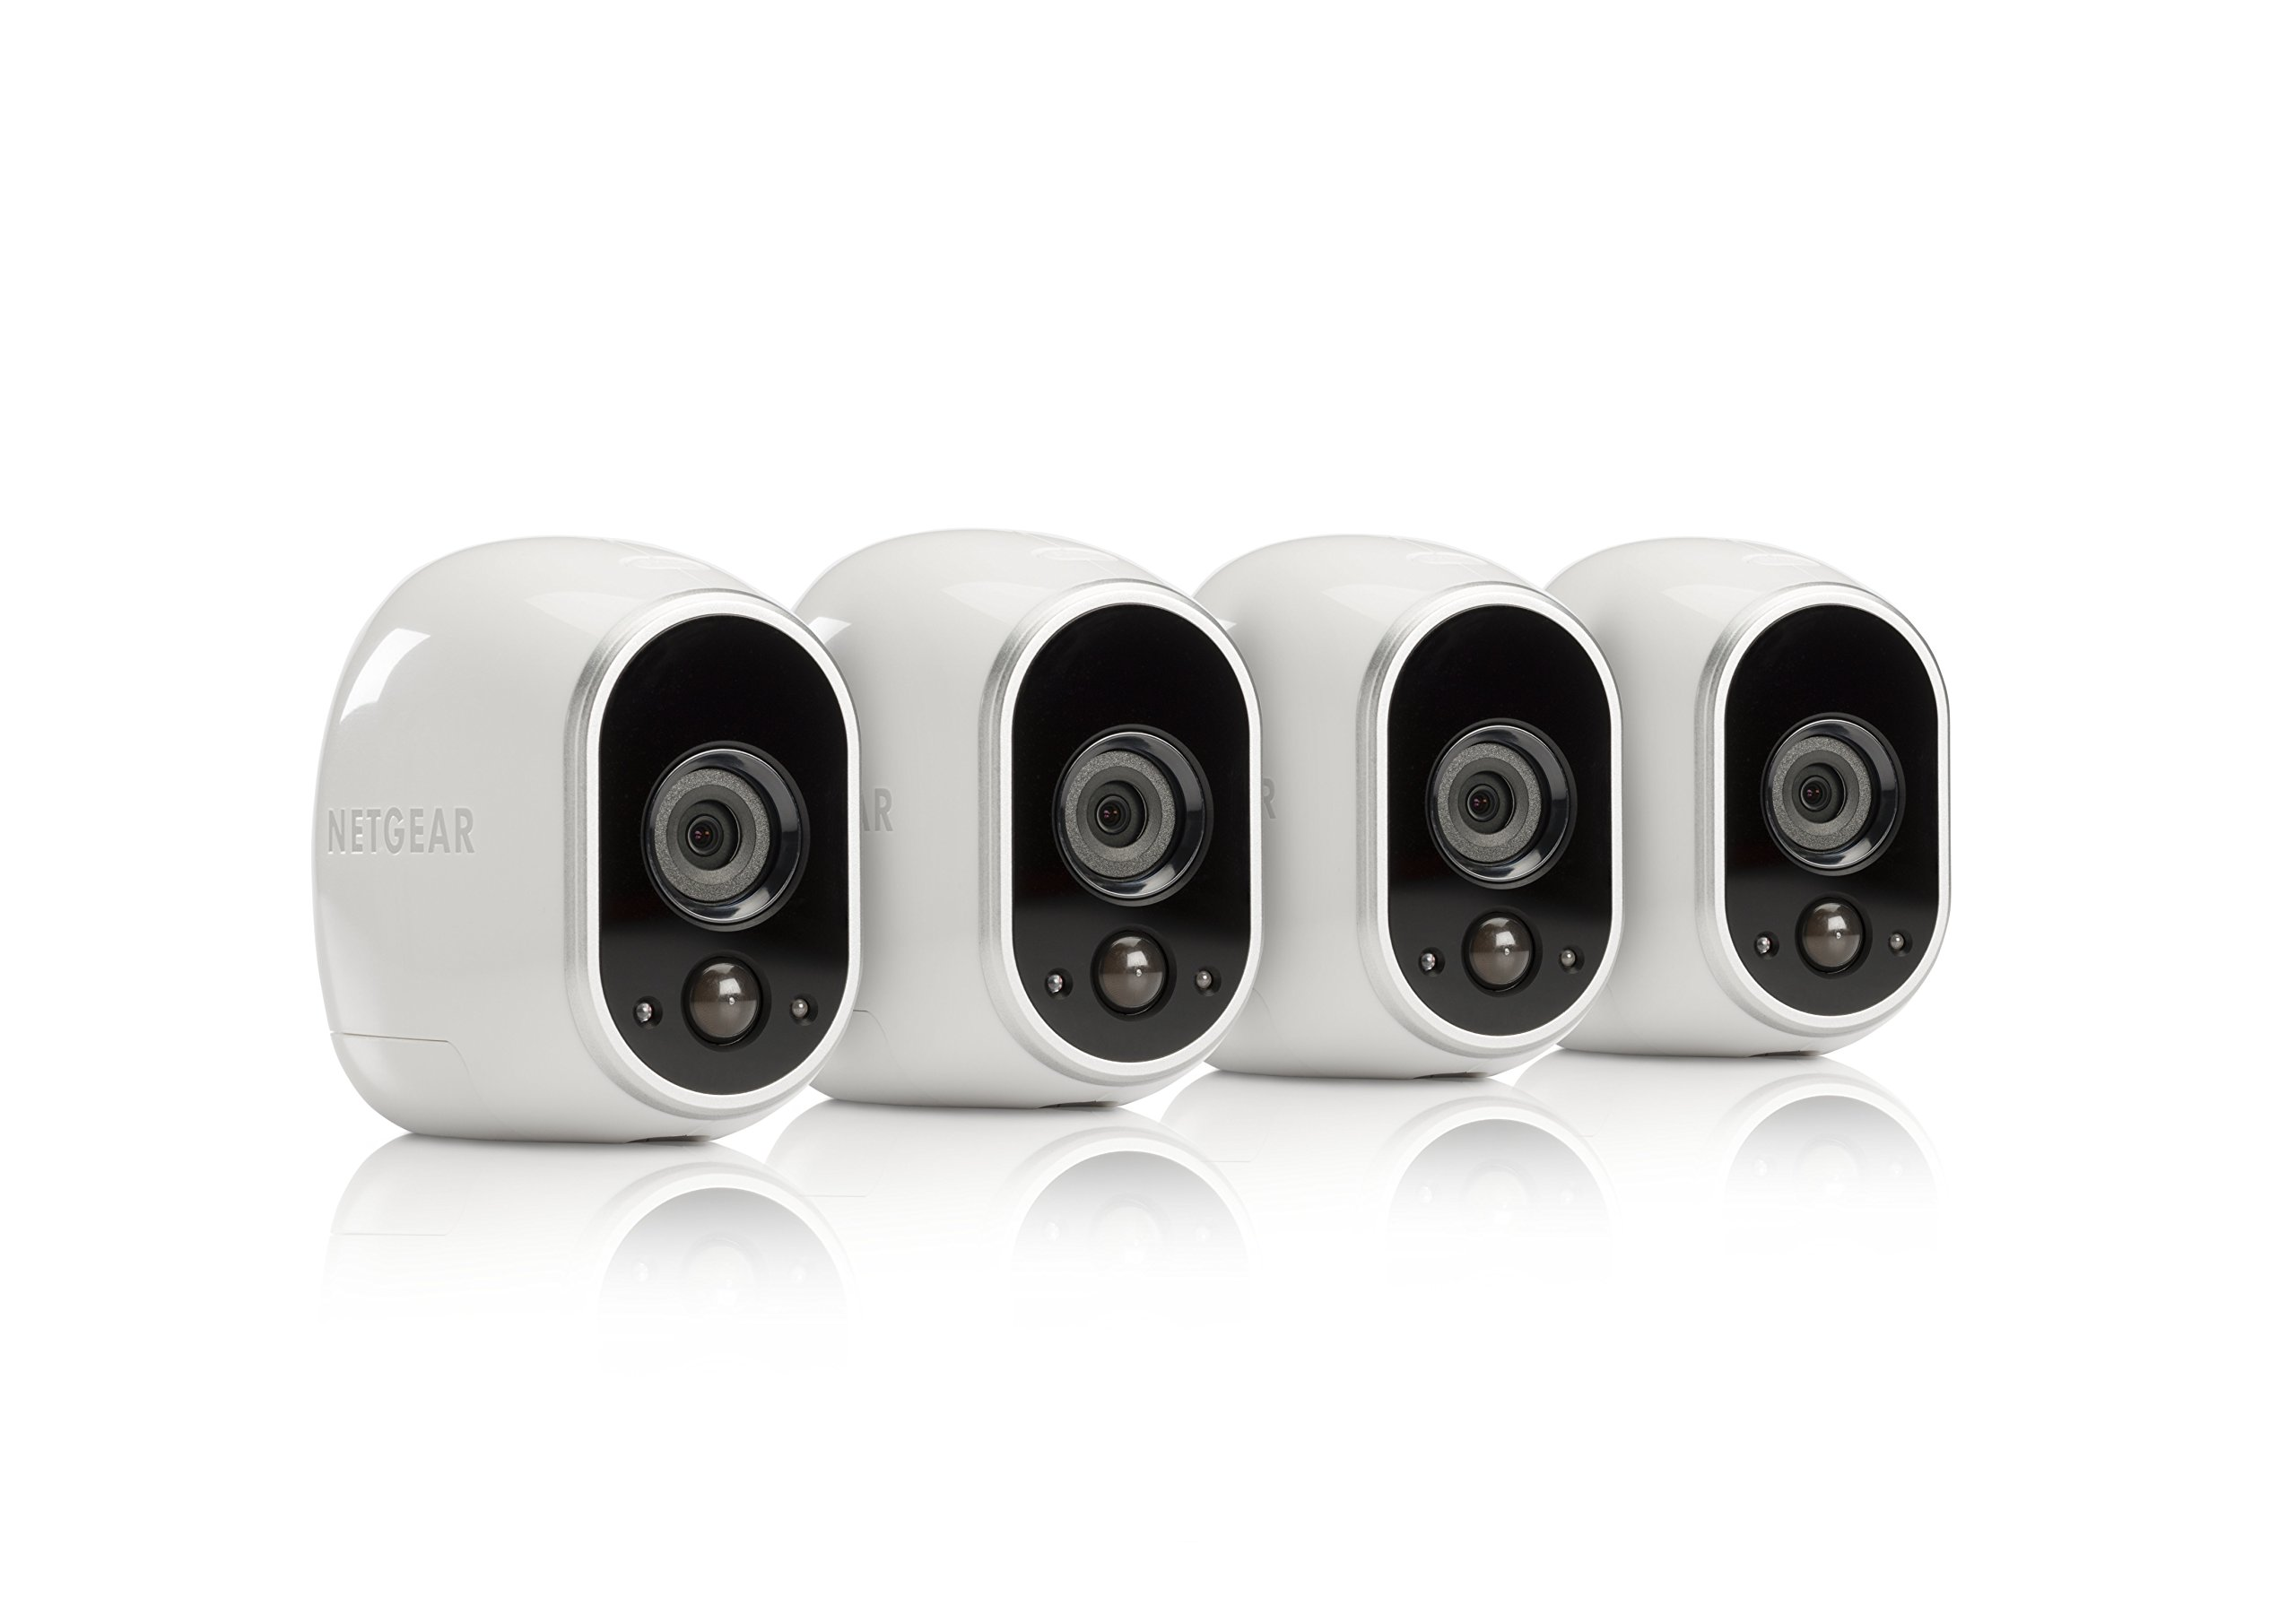 Arlo by NETGEAR Security System - 4 Wire-Free HD Cameras | Indoor/Outdoor | Night Vision (VMS3430), Works with Alexa by Arlo (Image #1)